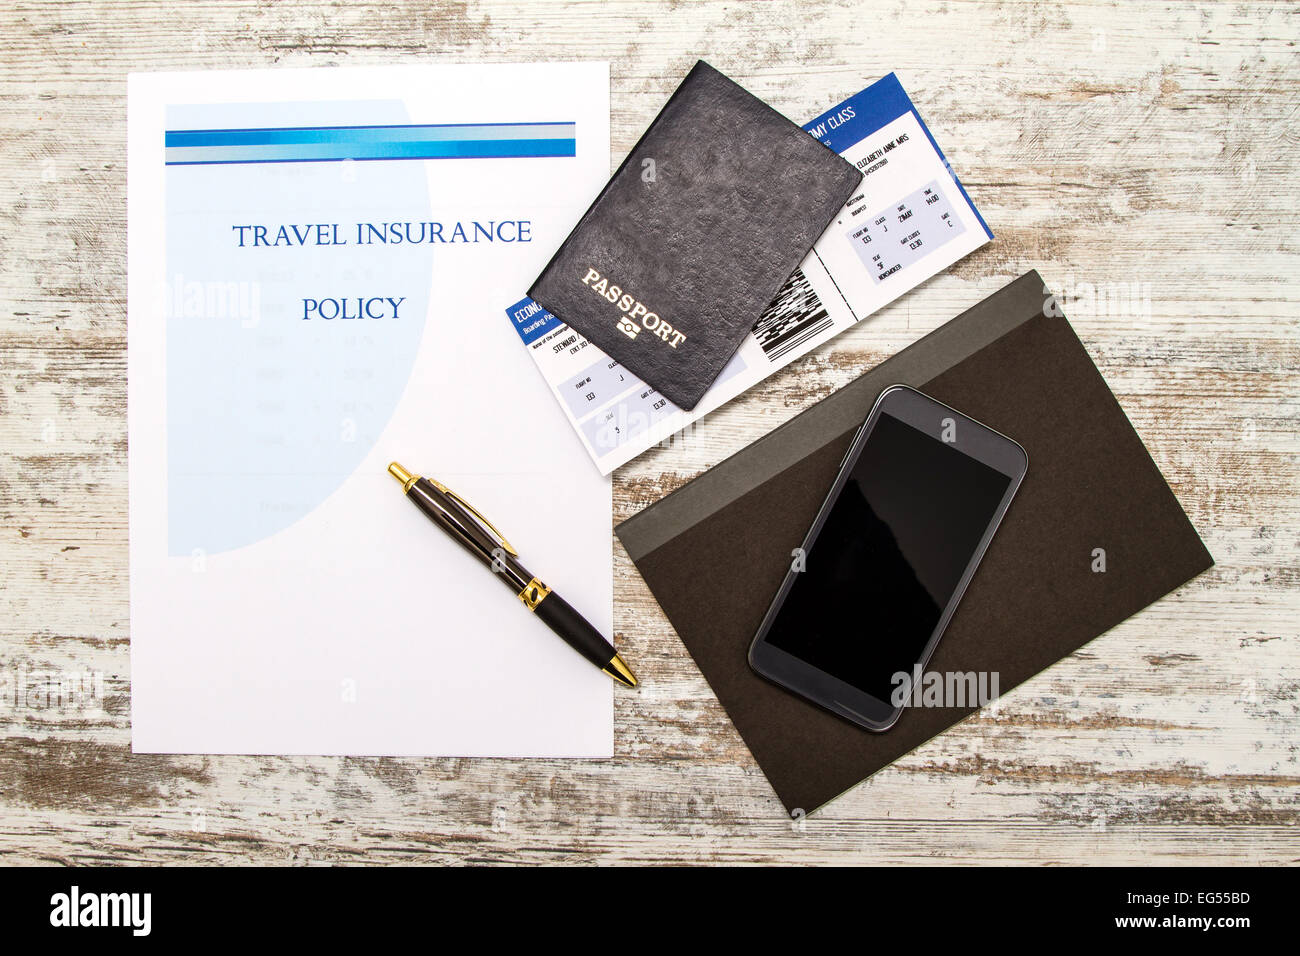 Travel insurance policy booklet with a boarding pass and a passport - Stock Image